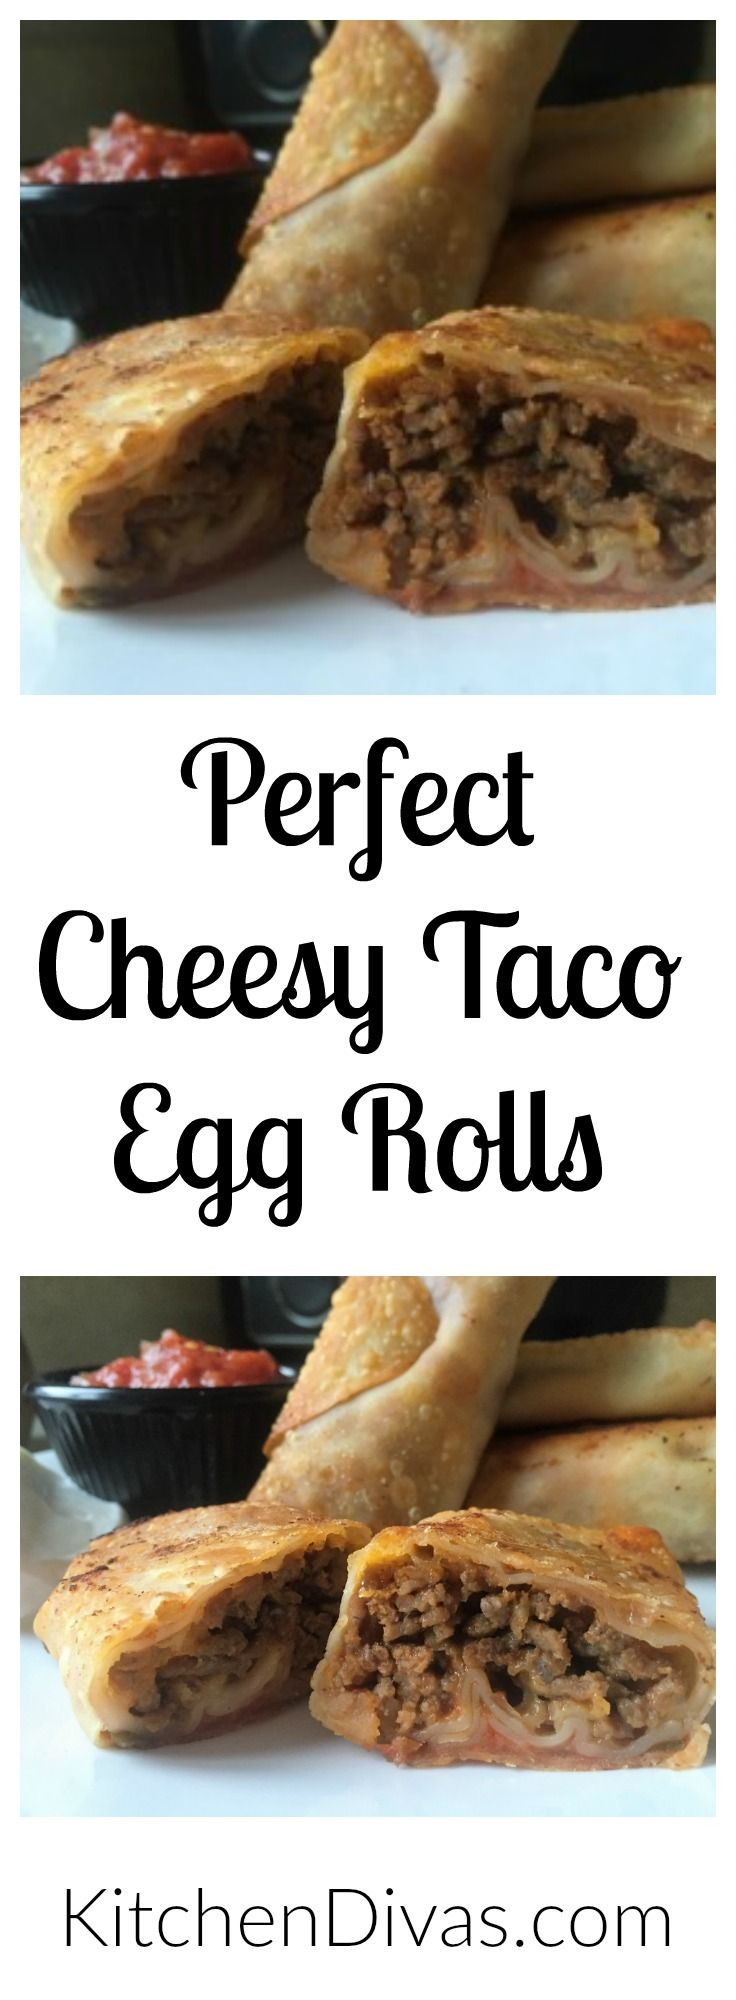 This is a variation of an old favorite of ours, Bacon Cheeseburger Egg Rolls. These Taco Egg Rolls can be made as spicy as you want, or need. Any ground meat works great. I love them with a combination of ground beef and ground pork. The onions, peppers, refried beans, salsa and cheese make these egg rolls delicious. They are awesome as a snack and so quick and easy to create. They can be fried or baked. Absolutely perfect! https://kitchendivas.com/perfect-cheesy-taco-egg-rolls/